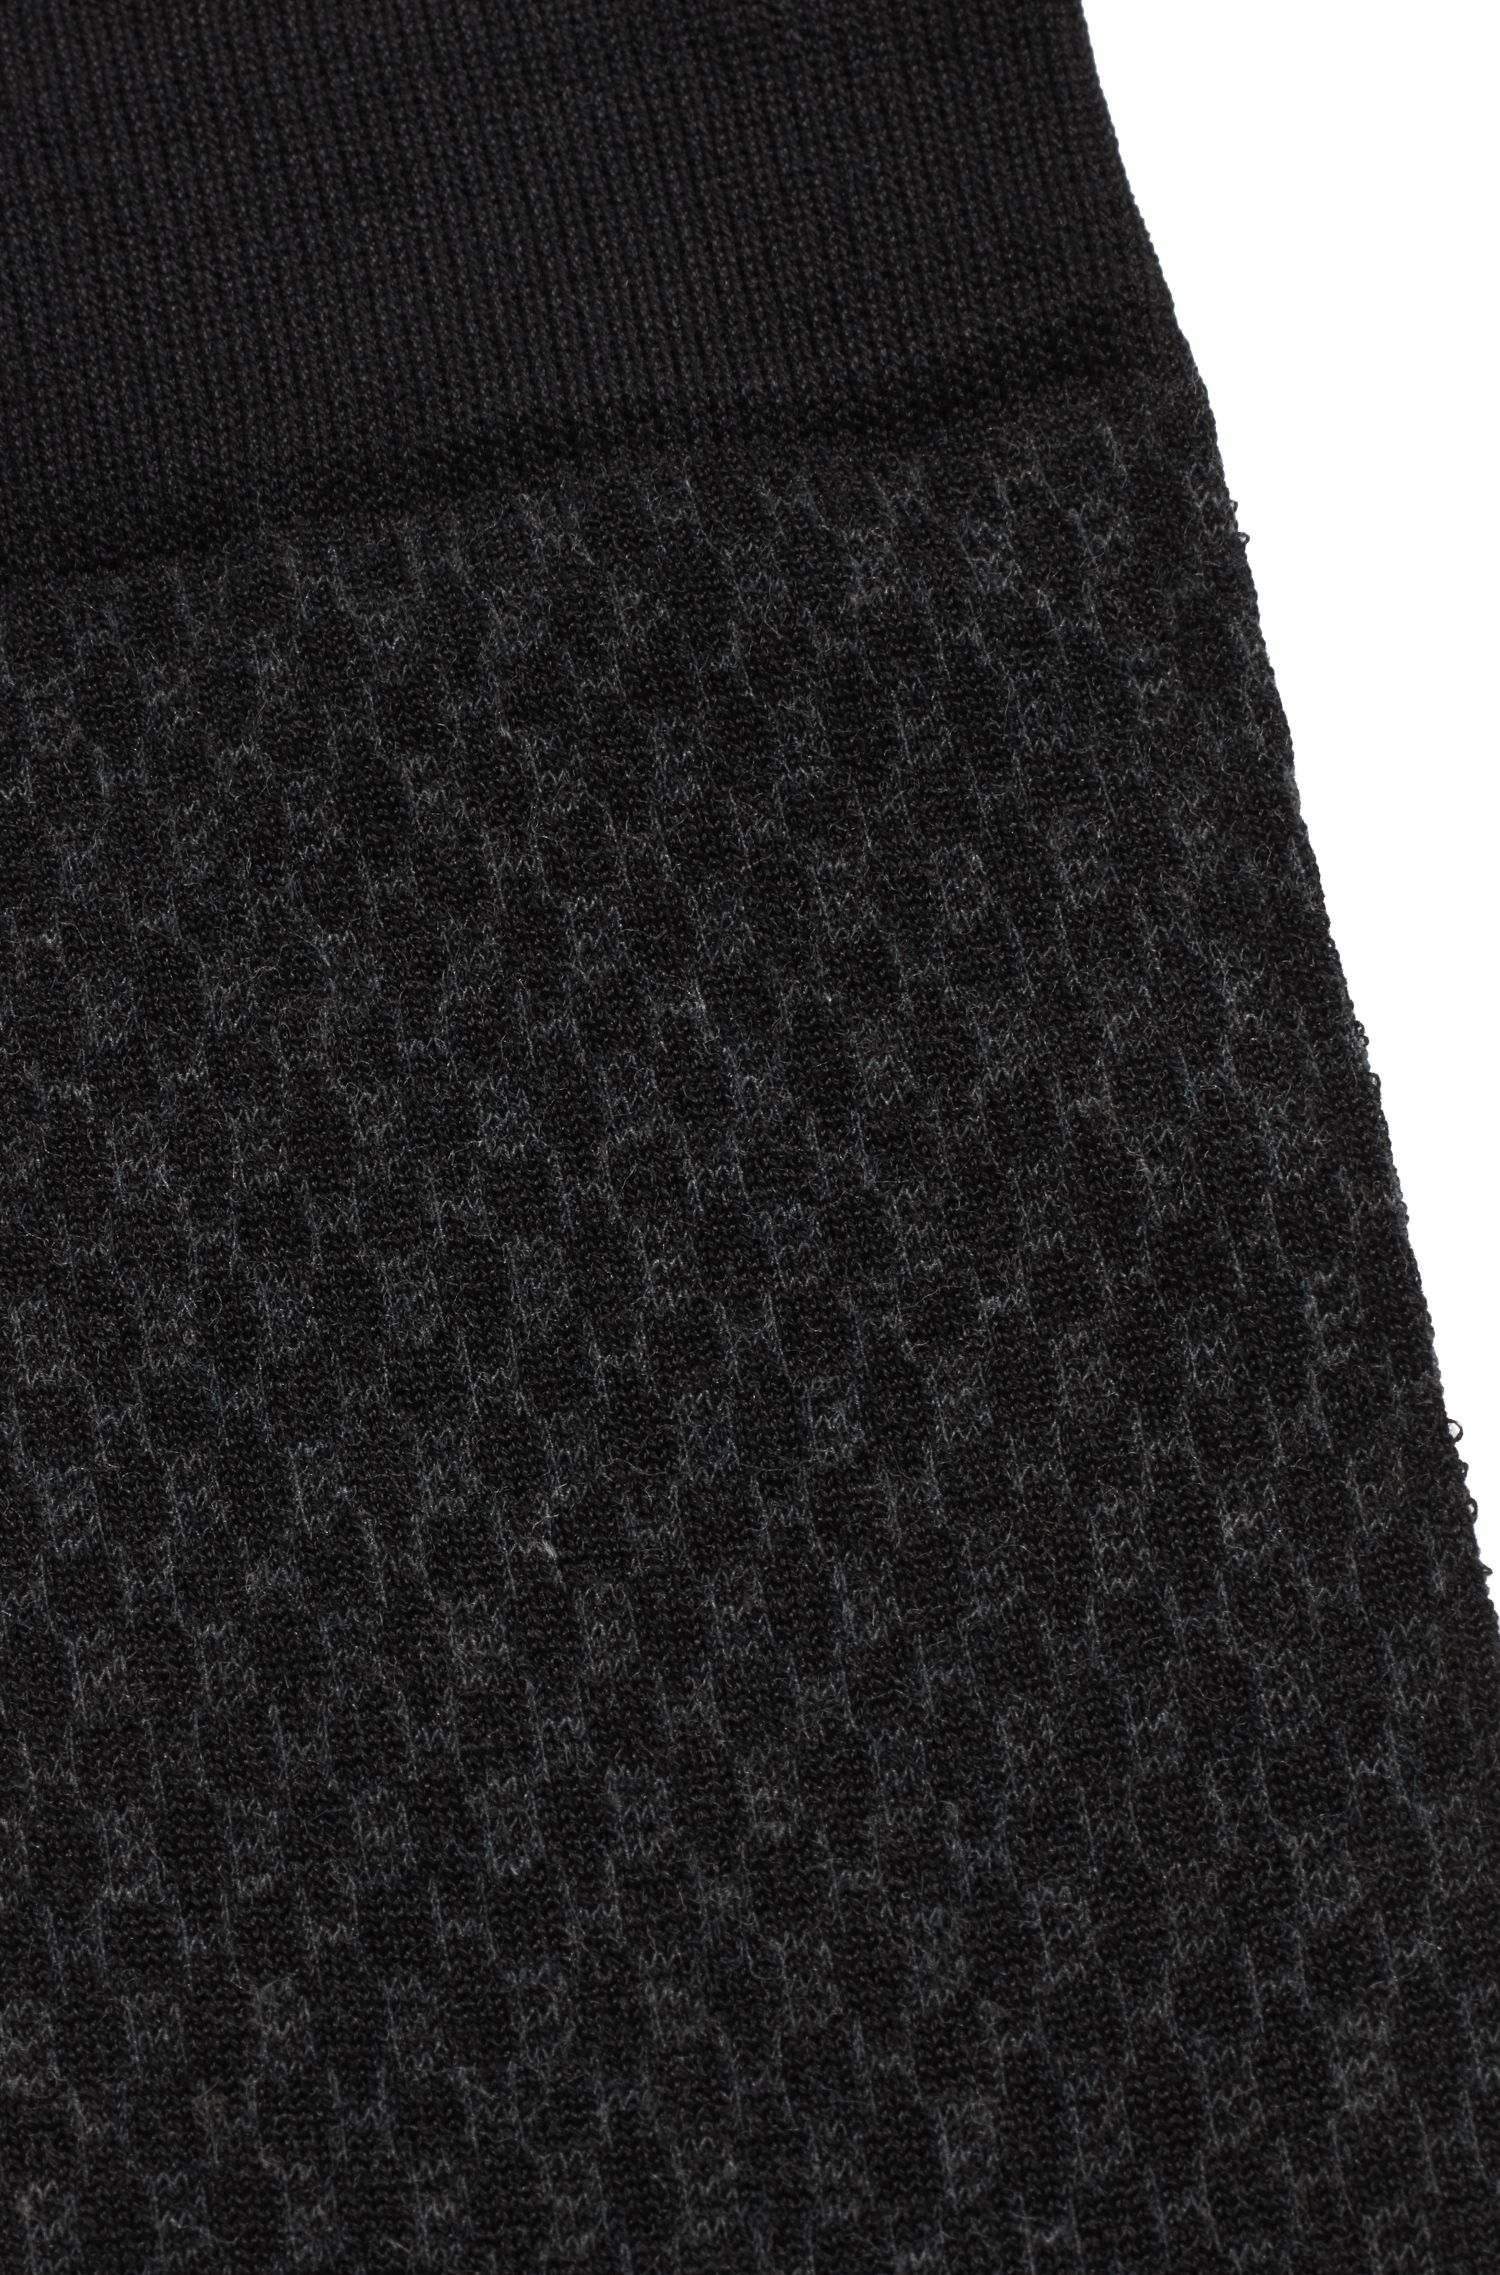 Monogram-patterned socks in a mercerised cotton blend, Black